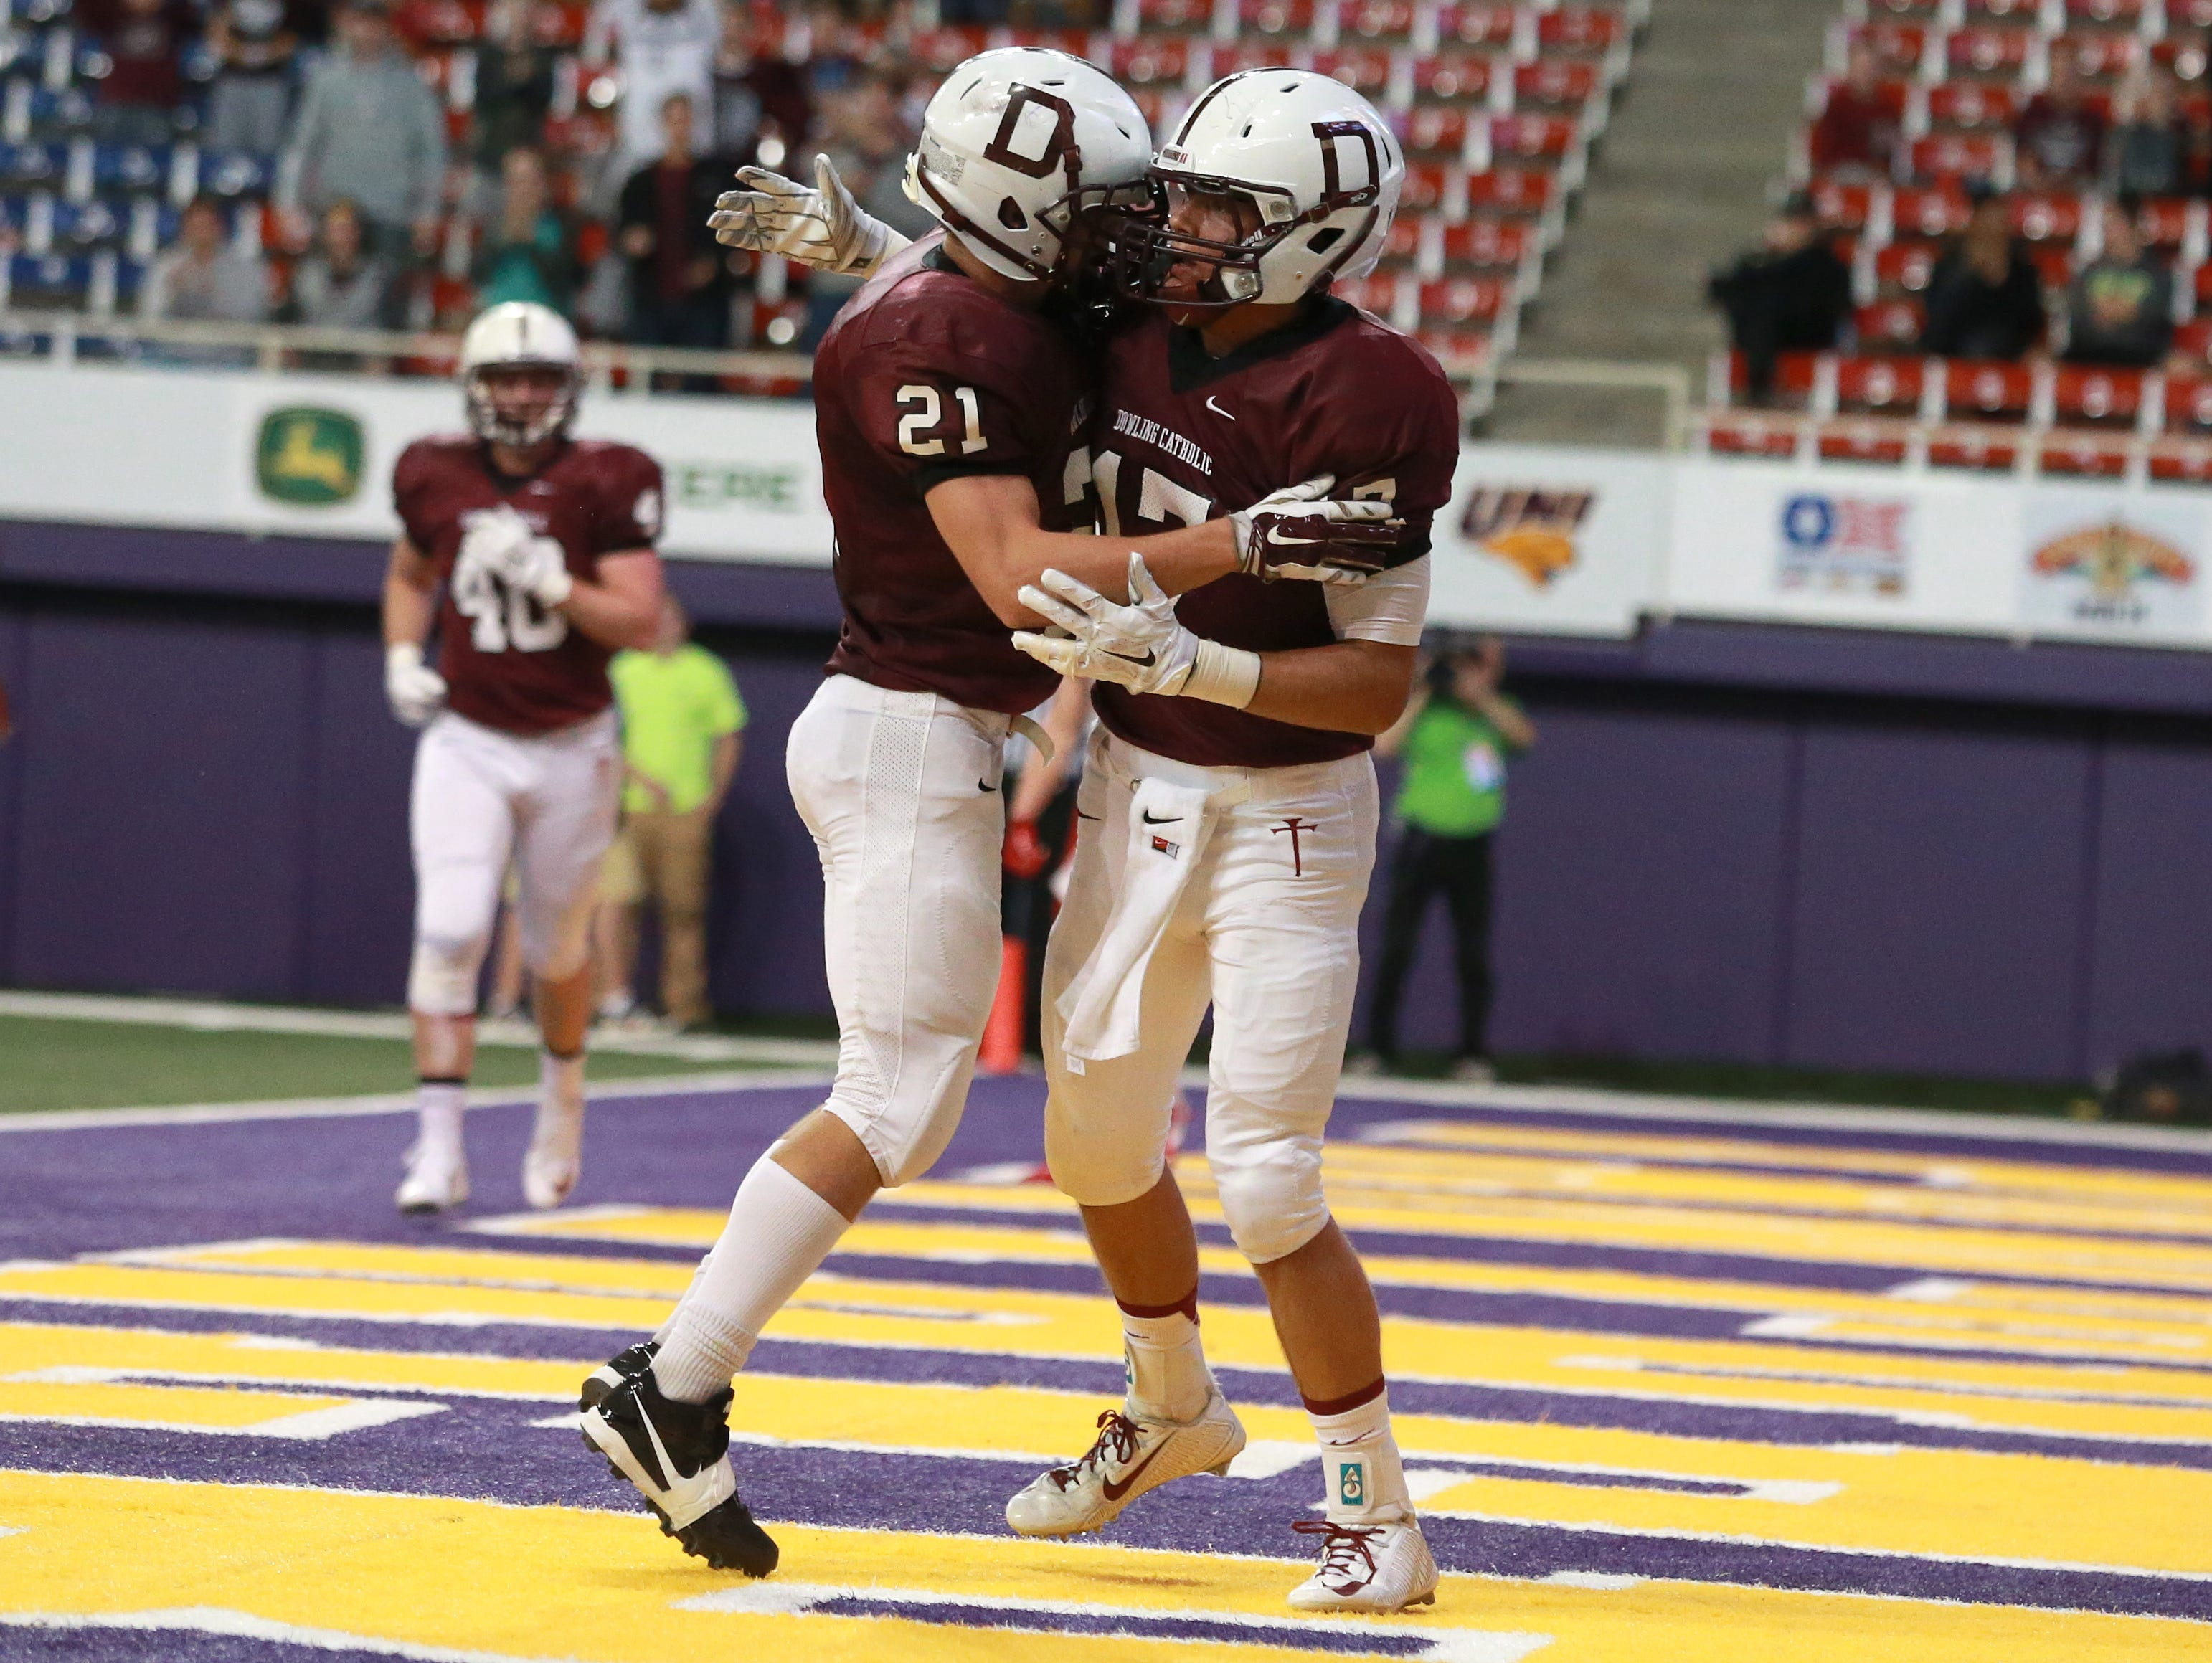 Dowling Catholic receiver Eric Fardal, right, celebrates a touchdown with Max Kasap against Cedar Rapids Washington in the Iowa Class 4A state football championship game on Friday, Nov. 21, 2014, at the UNI-Dome in Cedar Falls, Iowa.